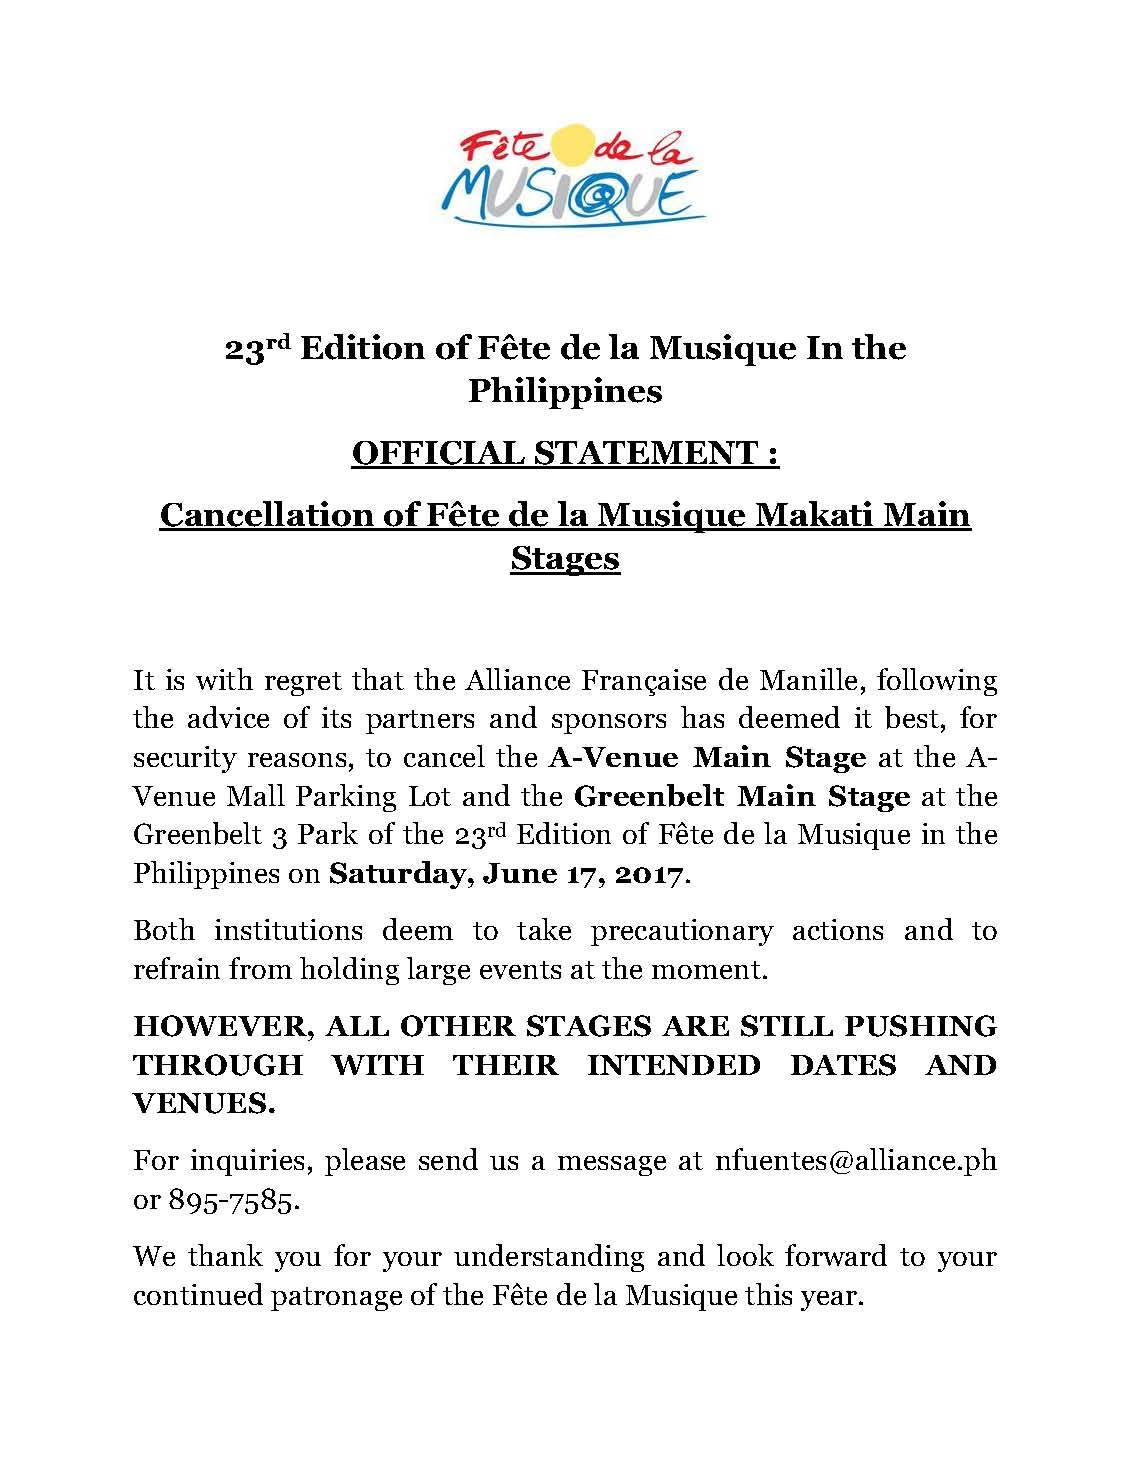 Alliance française de Manille‎Fête de la Musique Greenbelt Main Stage (Official event page) Page Liked · June 9 · Official statement on the cancellation of Makati Main stages of Fete de la Musique on June 17, 2017